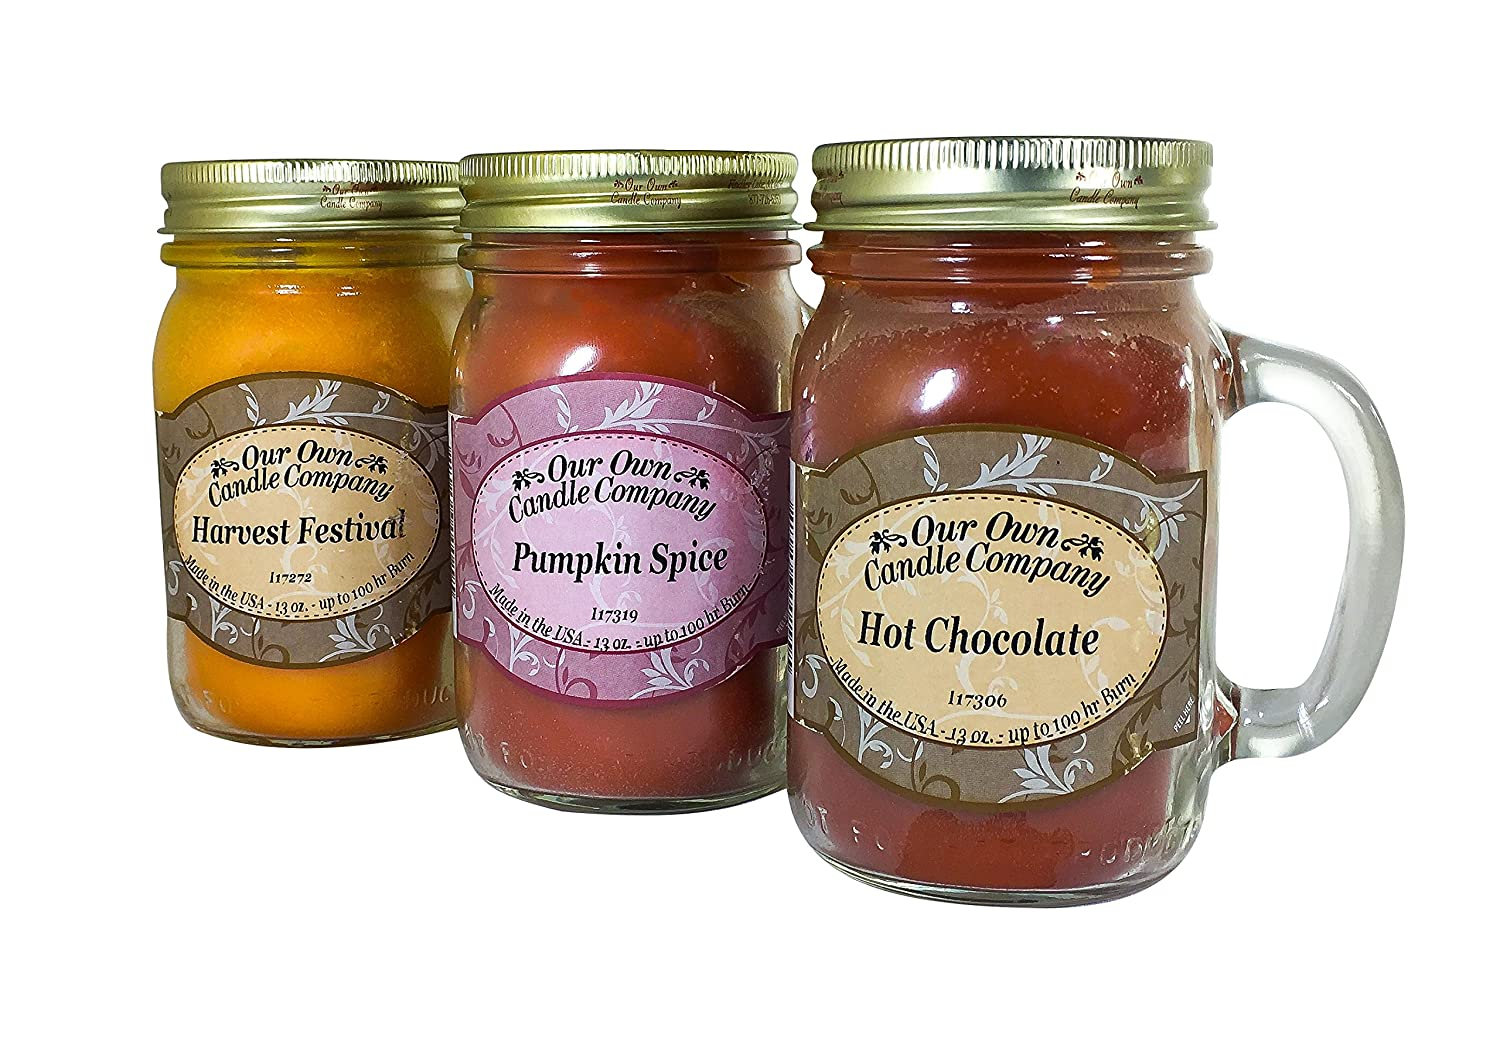 Our Own Candle Company Our Own Harvest Festival, Pumpkin Spice Hot Chocolate-Autumn Variety Scented Mason Jar Candles, 13 oz (3 Pack)